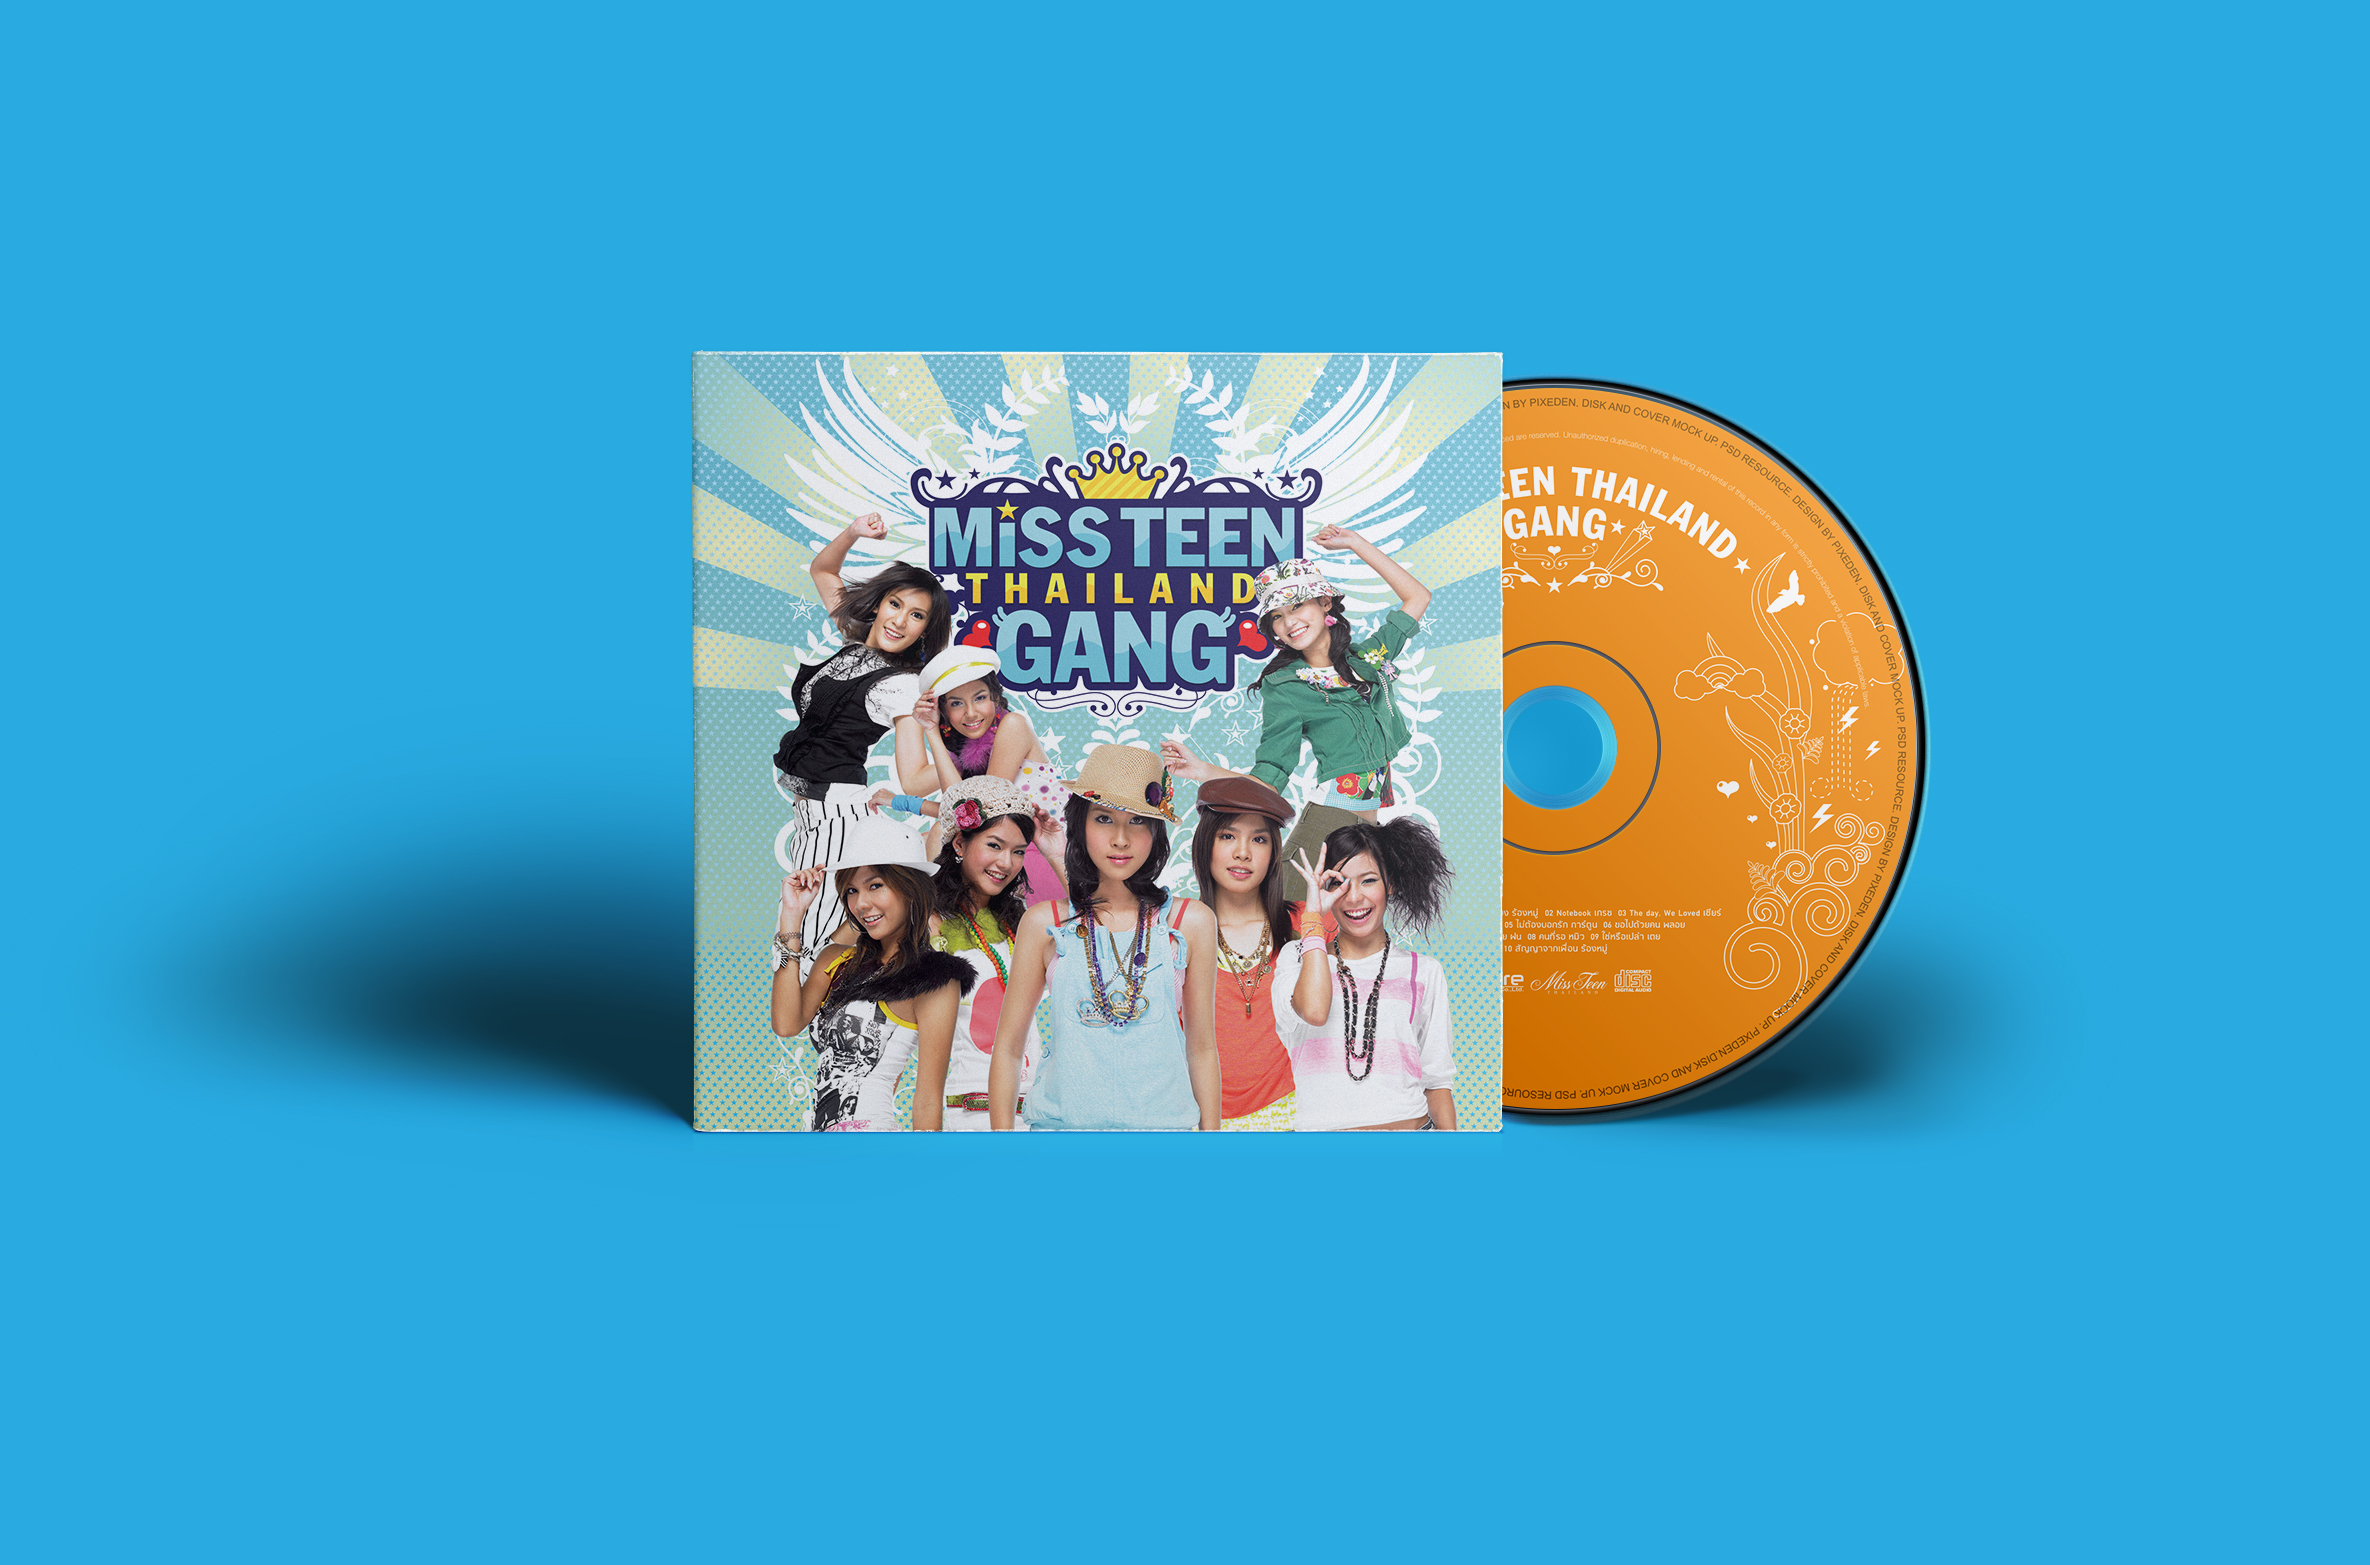 CD packaging for Miss Teen Thailand Gang The Album